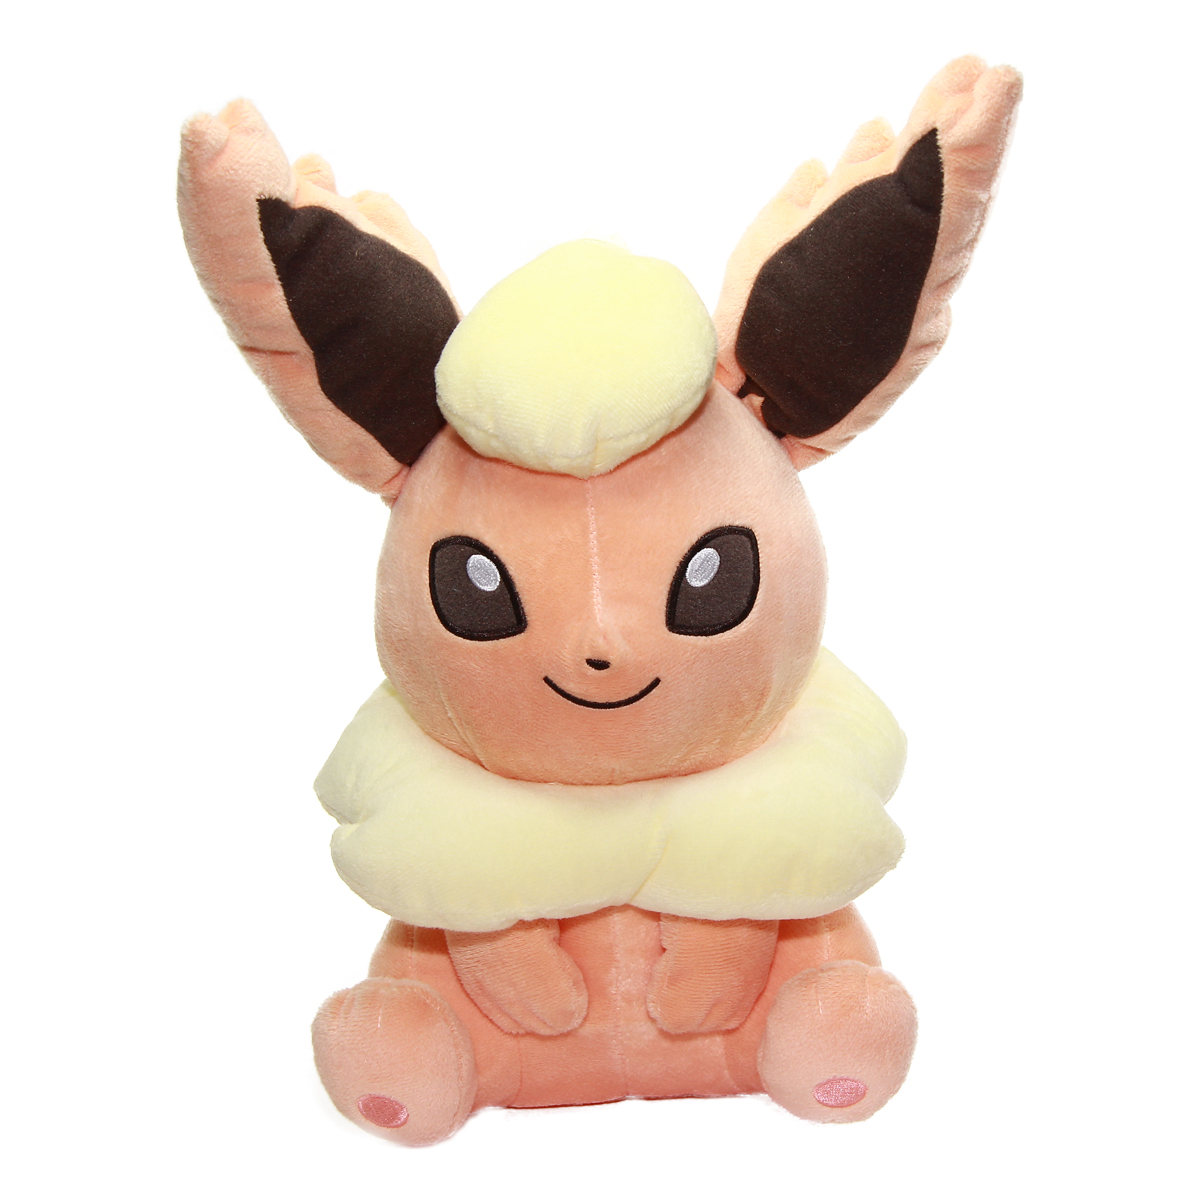 Pokemon Flareon Plush Doll 10 Inches Bandai Spirits Banpresto